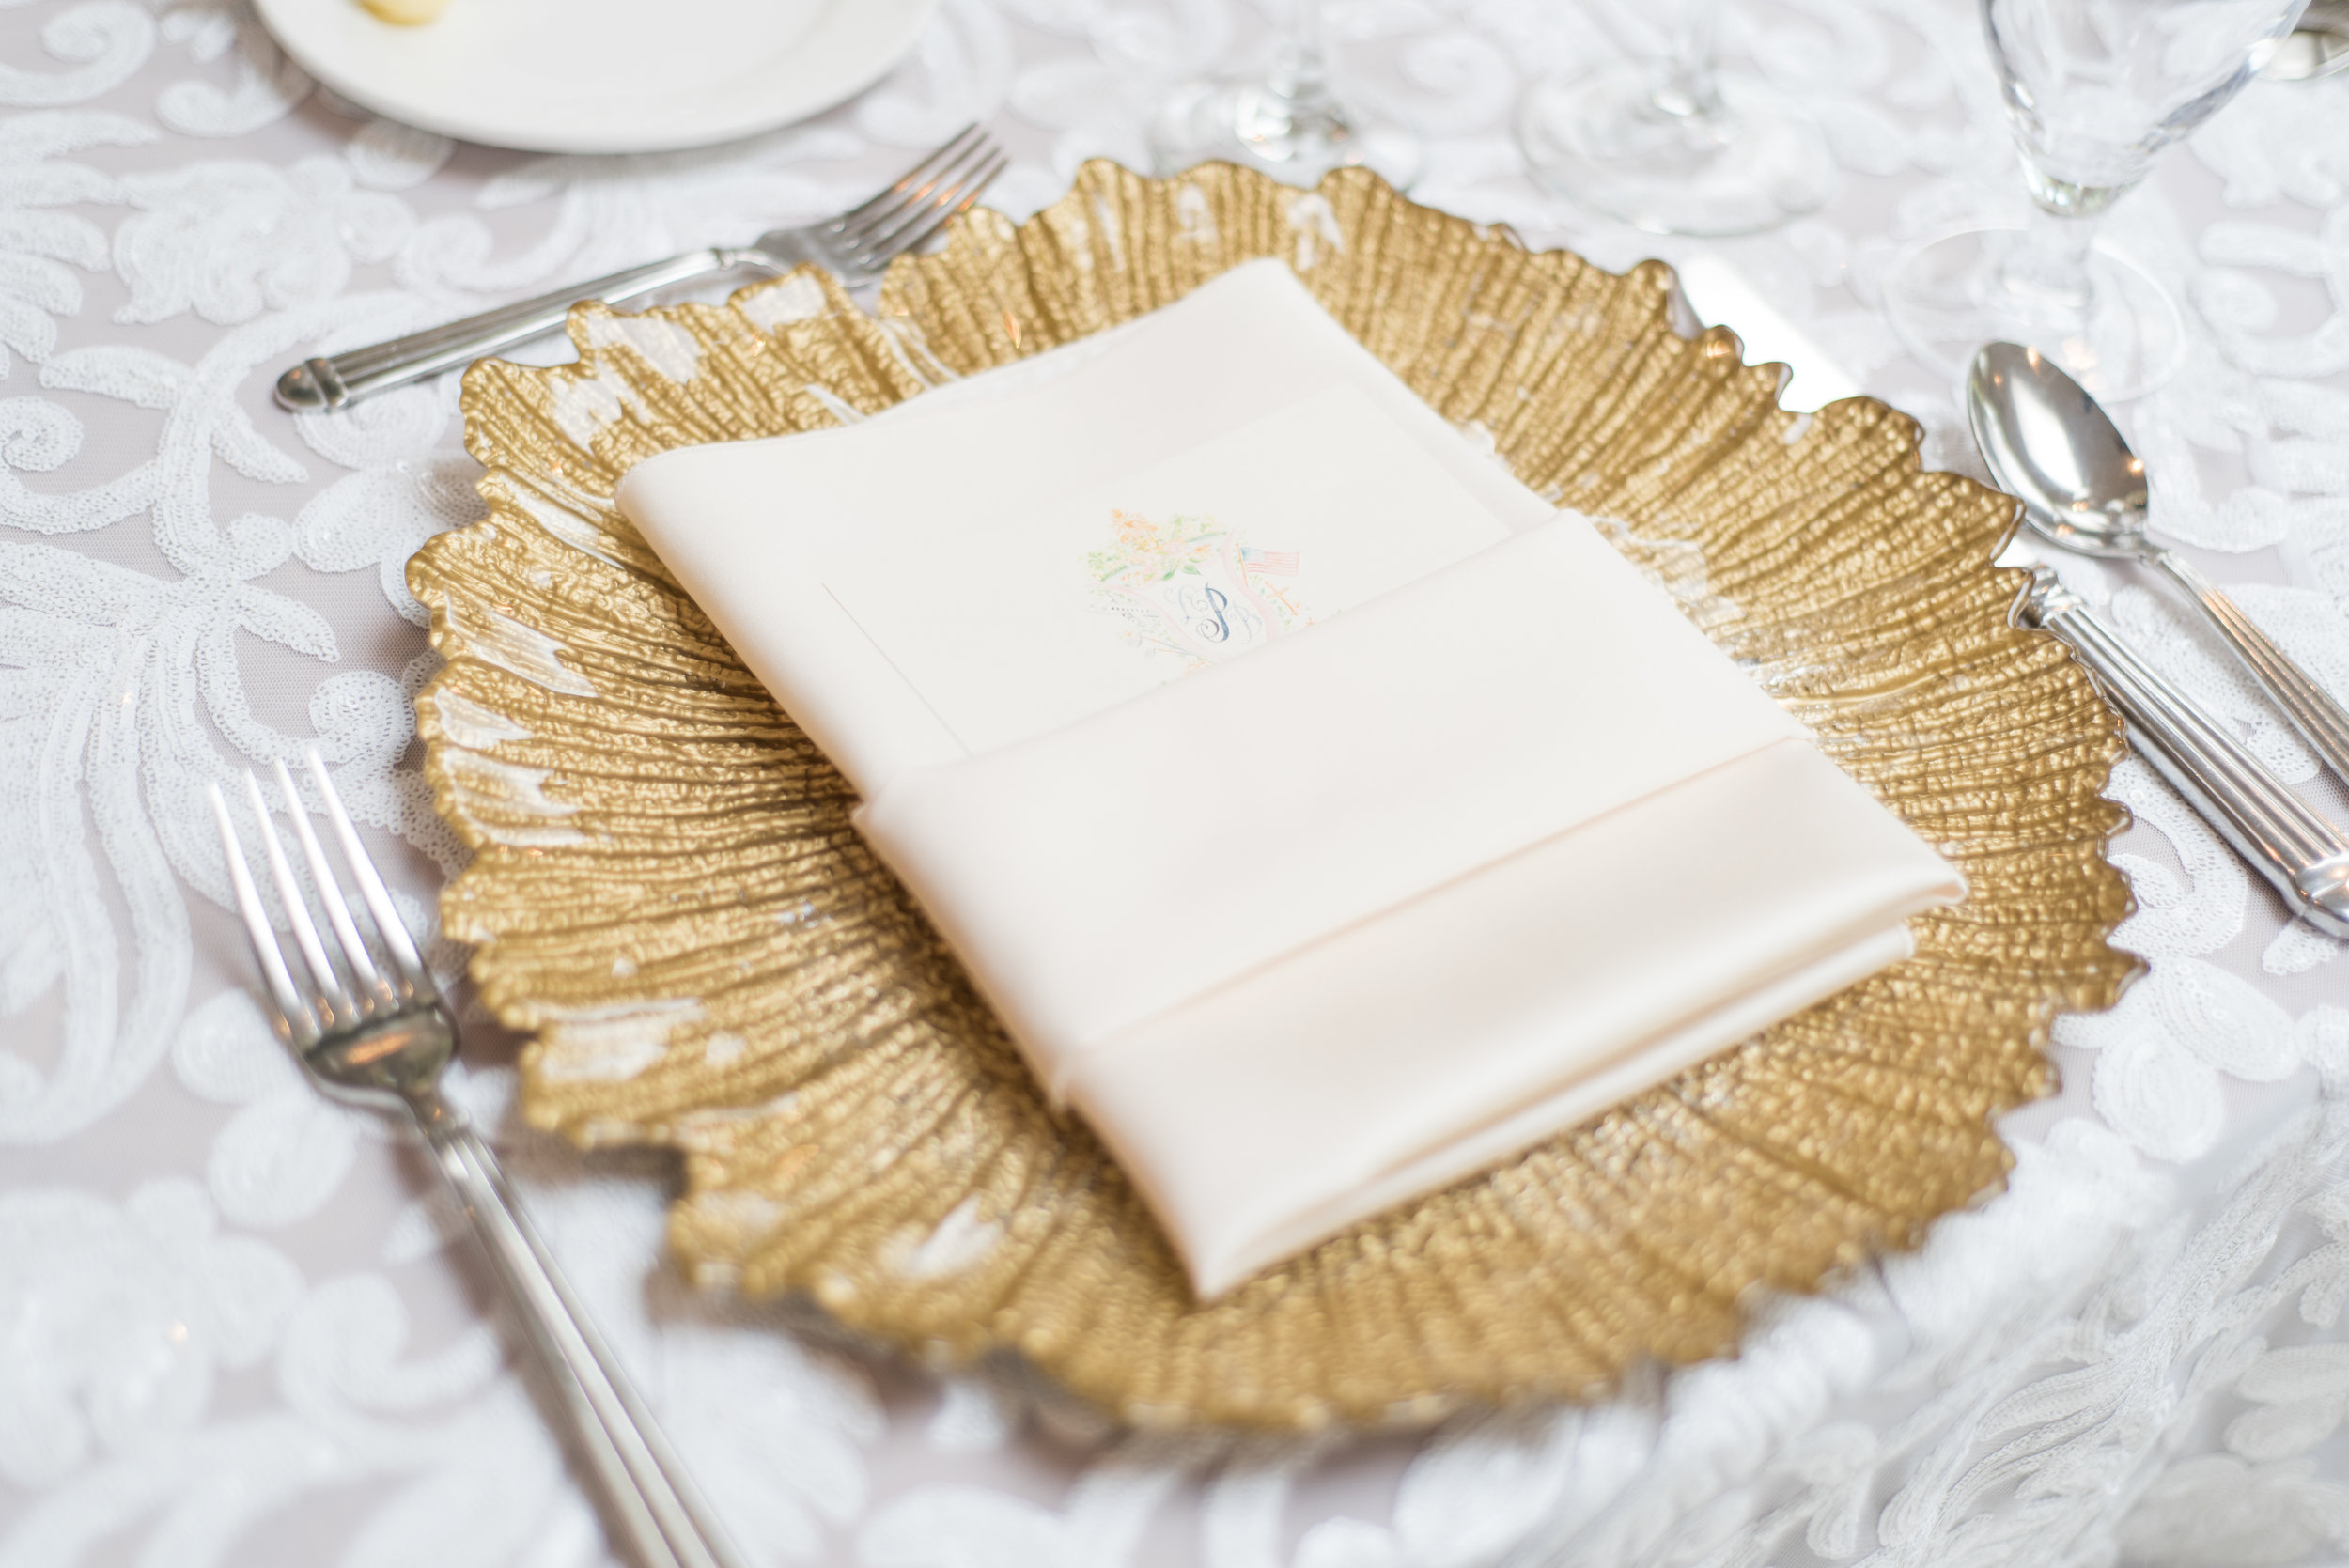 Menu Napkin Fold Gold Charger Wedding Guest Place Setting.JPG